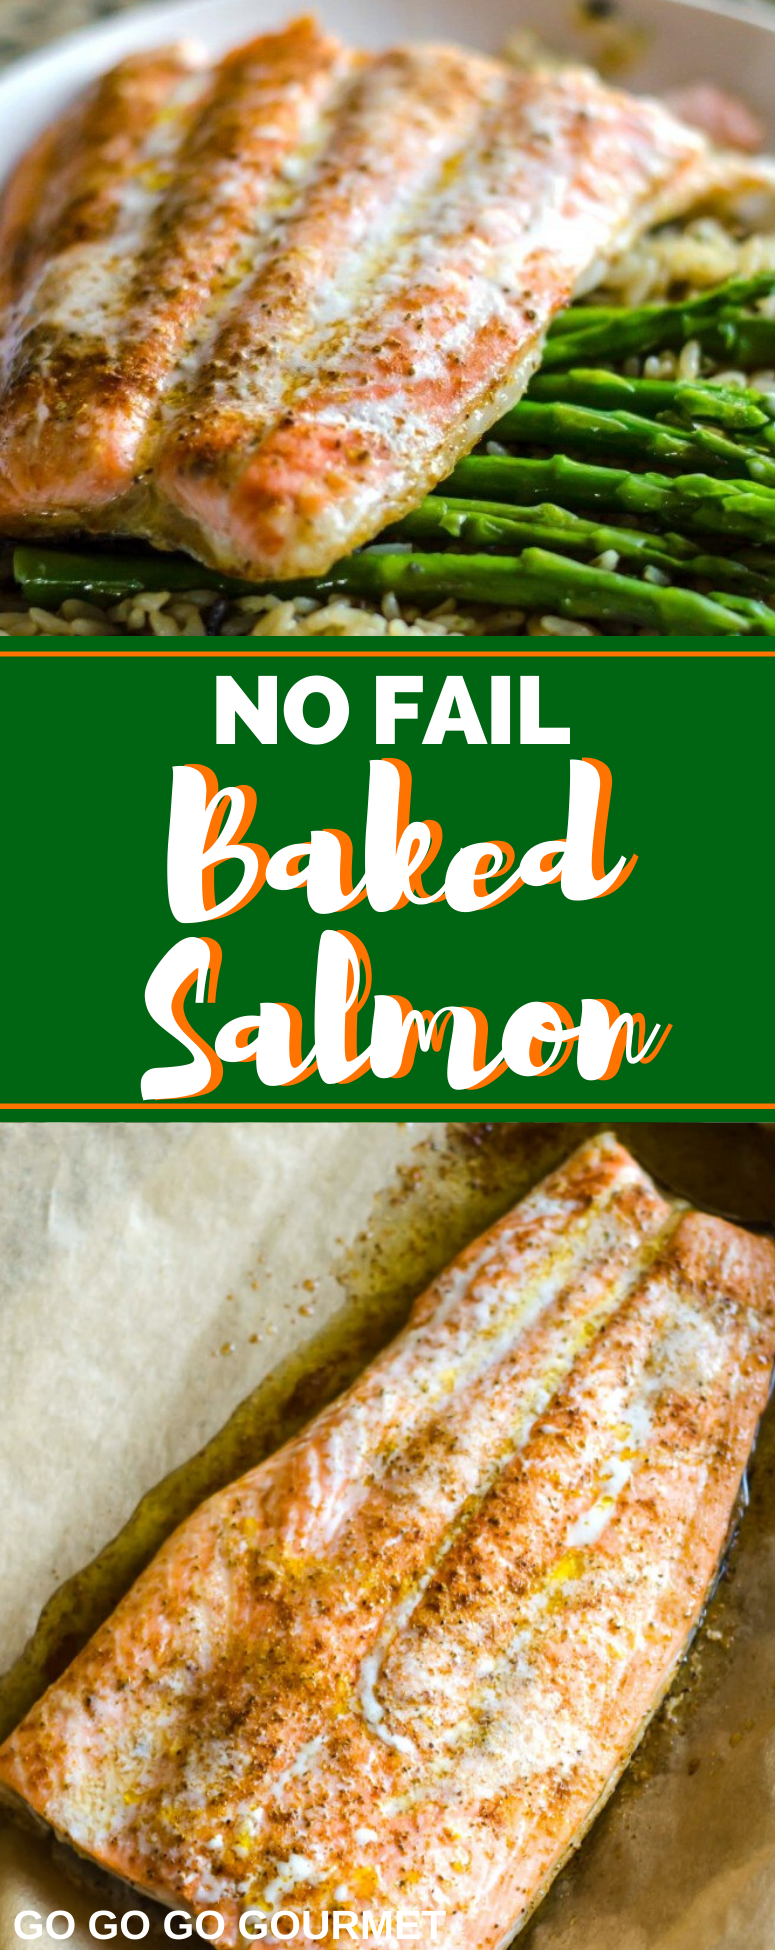 This easy No-Fail Baked Salmon recipe is exactly that- you can't go wrong! Seasoned fish gets baked in the oven for tender, juicy flaky salmon every time! #gogogogourmet #bakedsalmon #salmonrecipe #easyweeknightdinner via @gogogogourmet